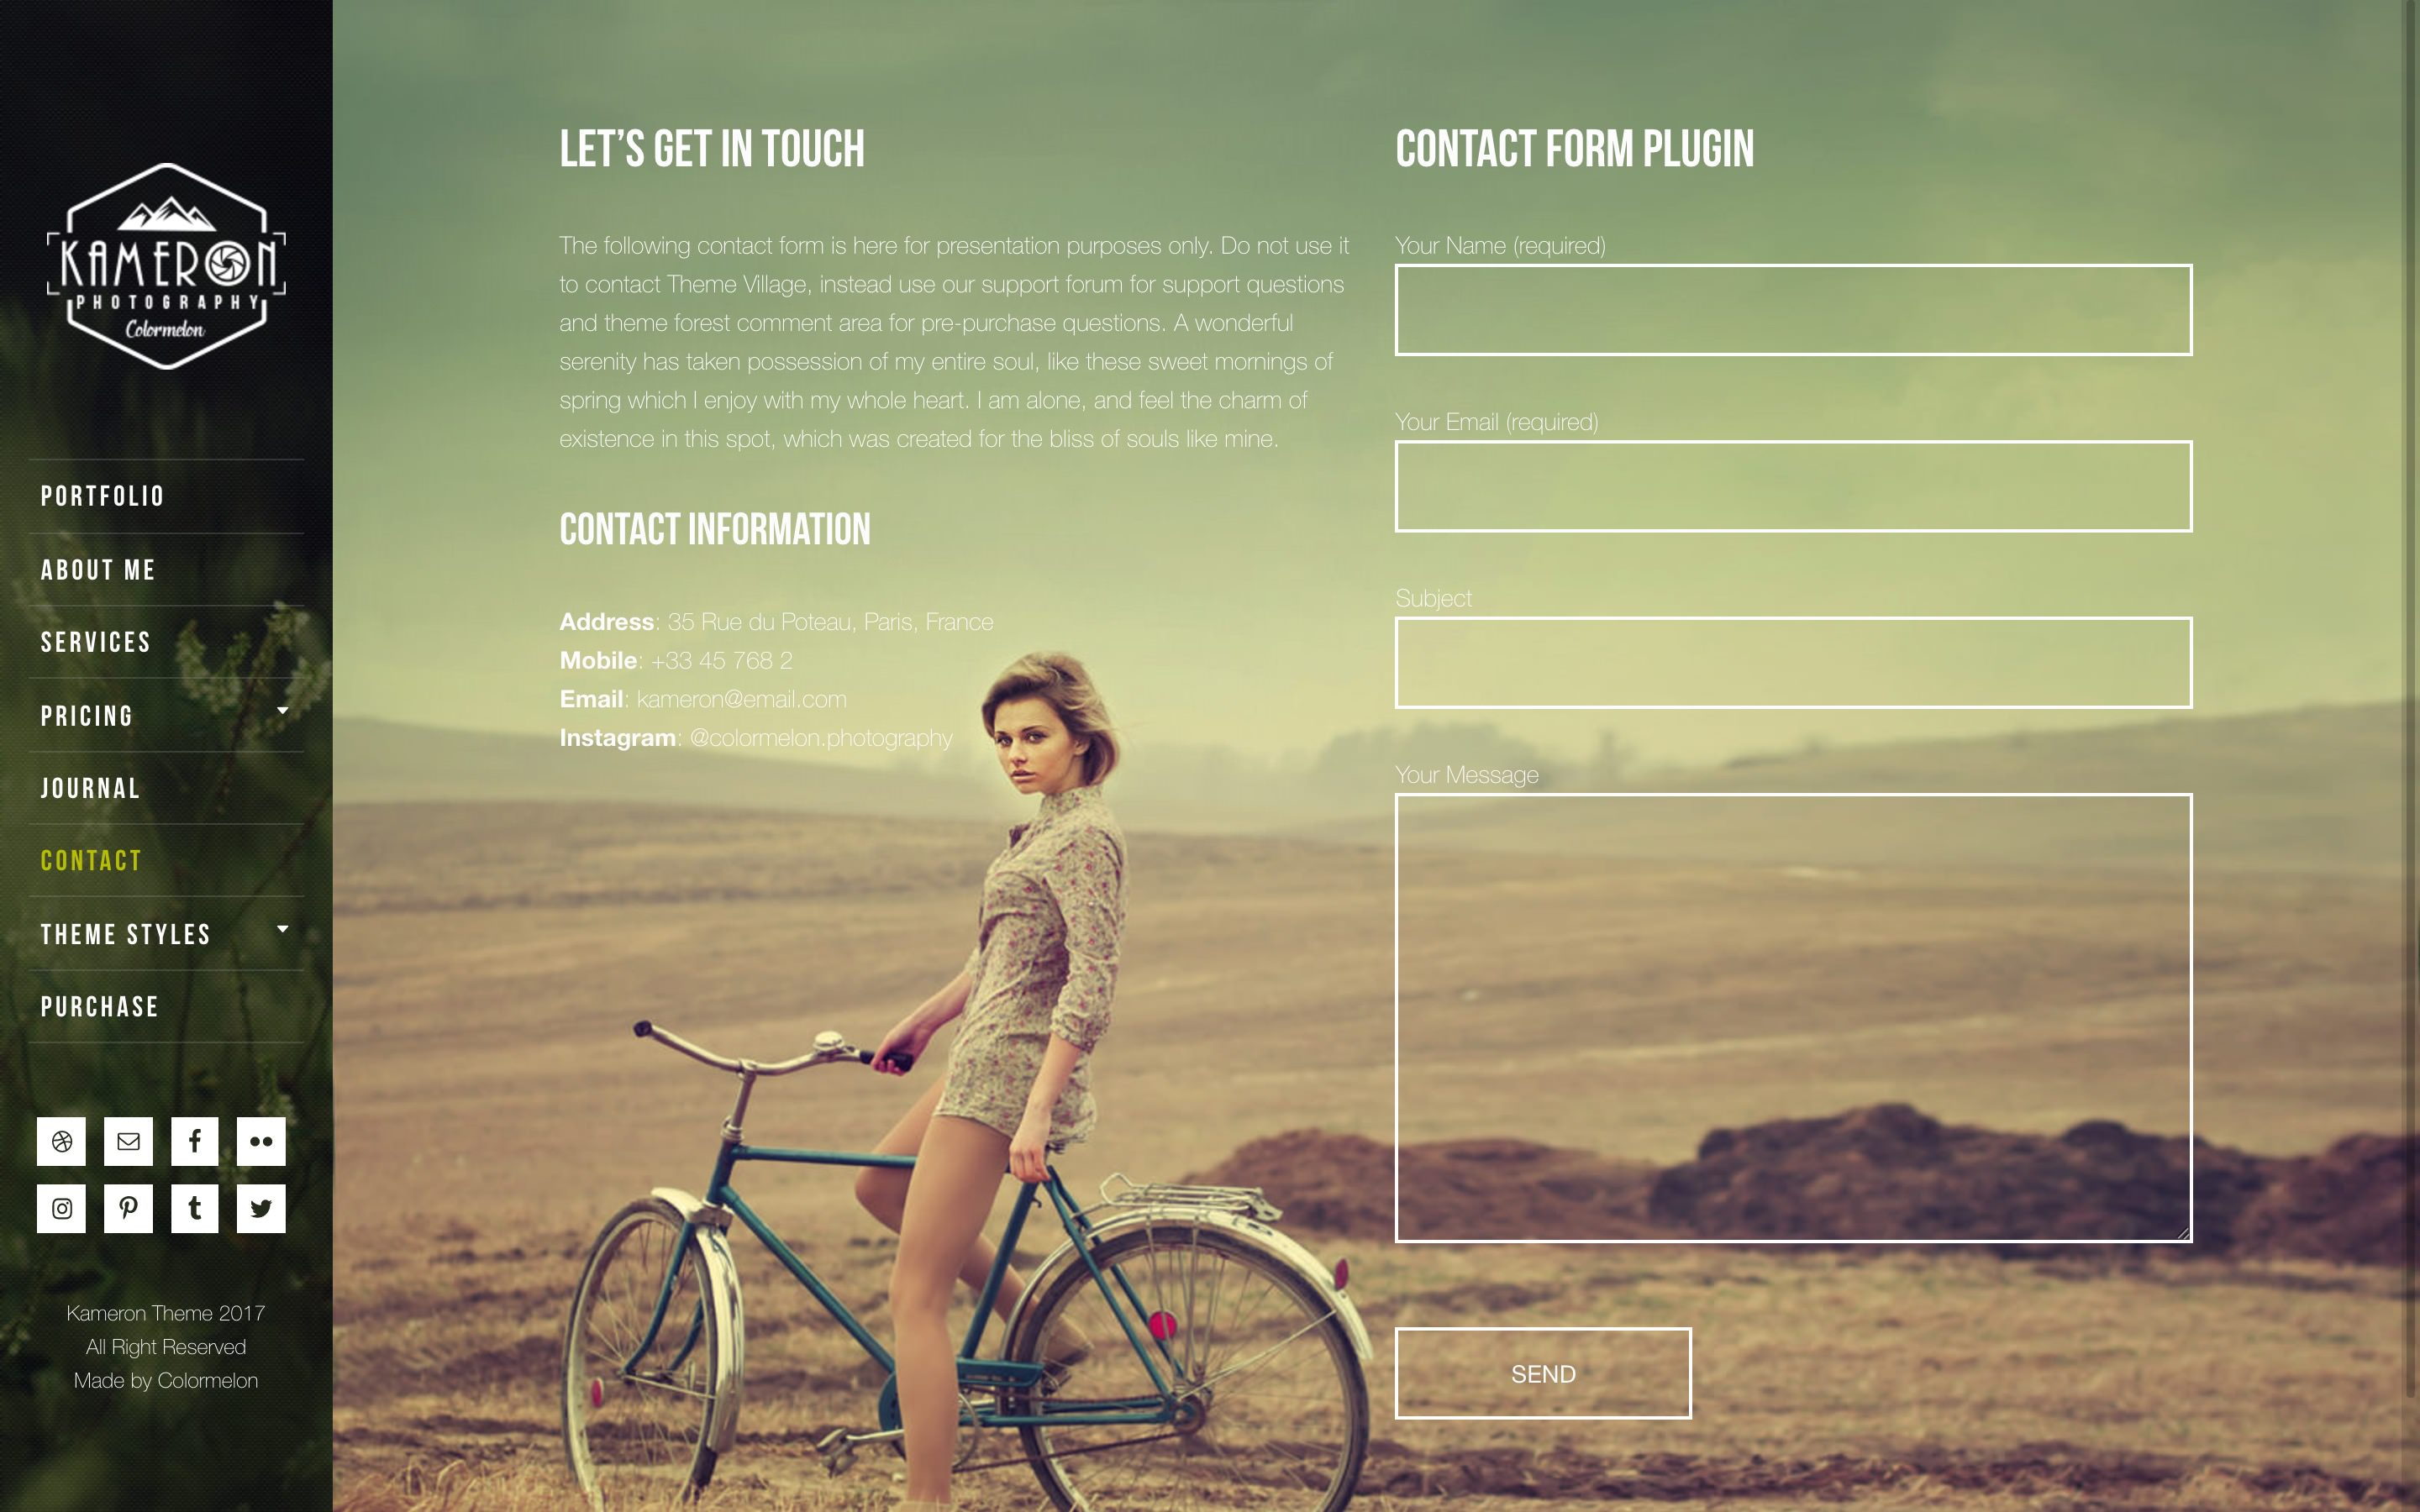 Kameron Photography WordPress theme - upload your own page background images